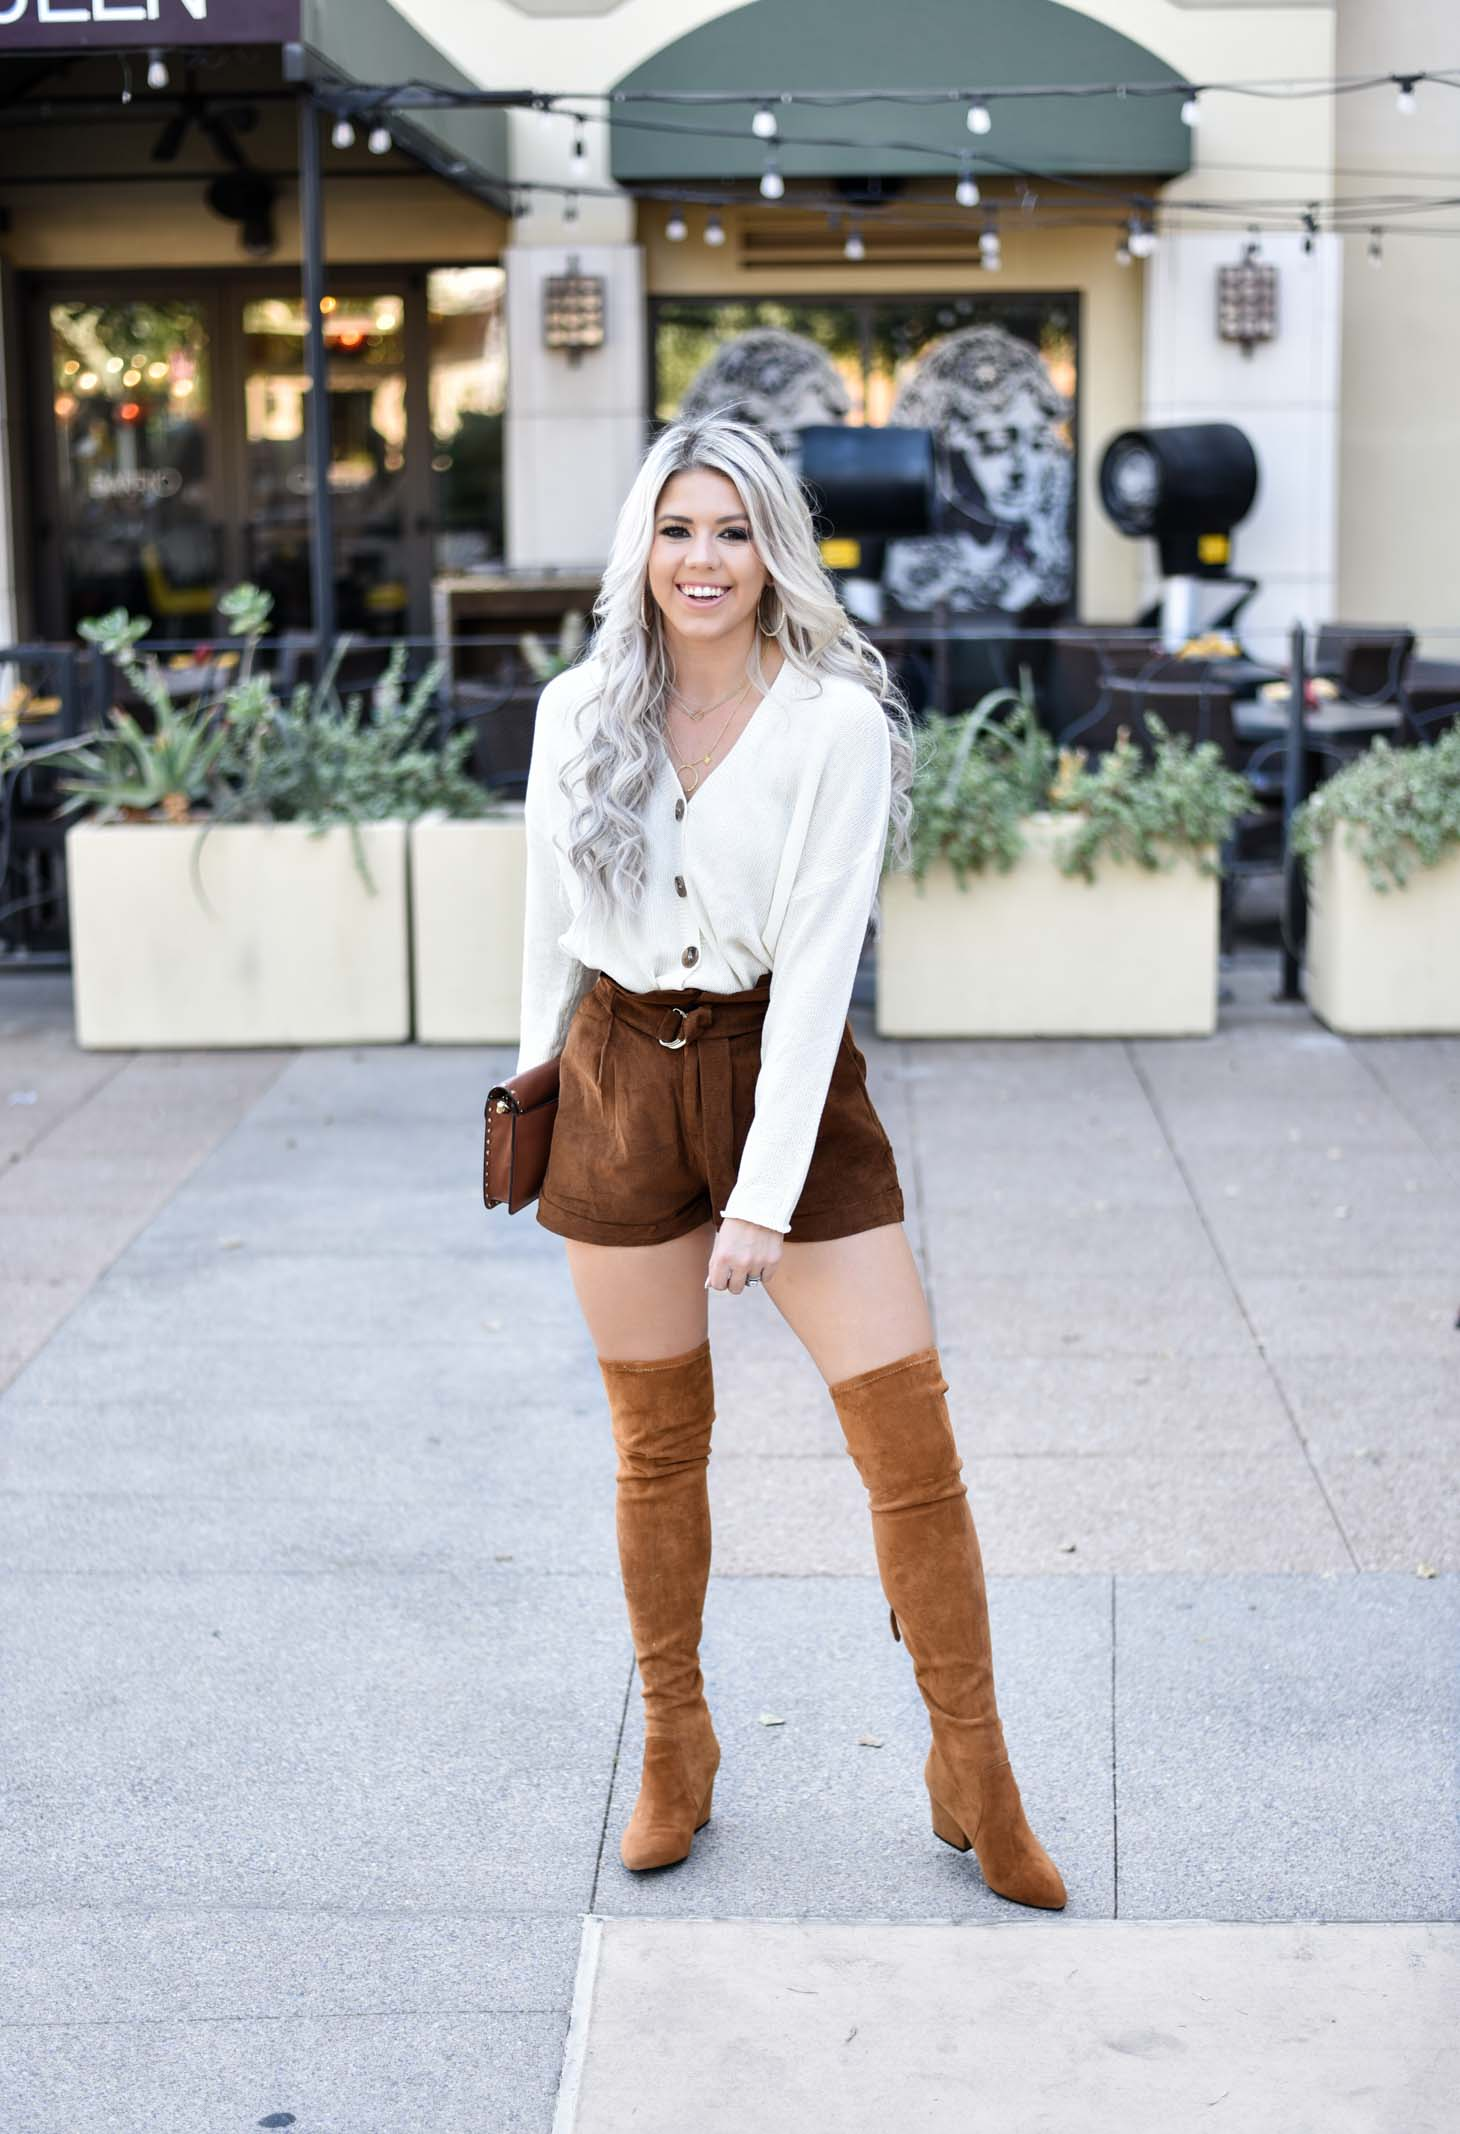 Erin Elizabeth of Wink and a Twirl in the cutest fall outfit from Goodnight Macaroon